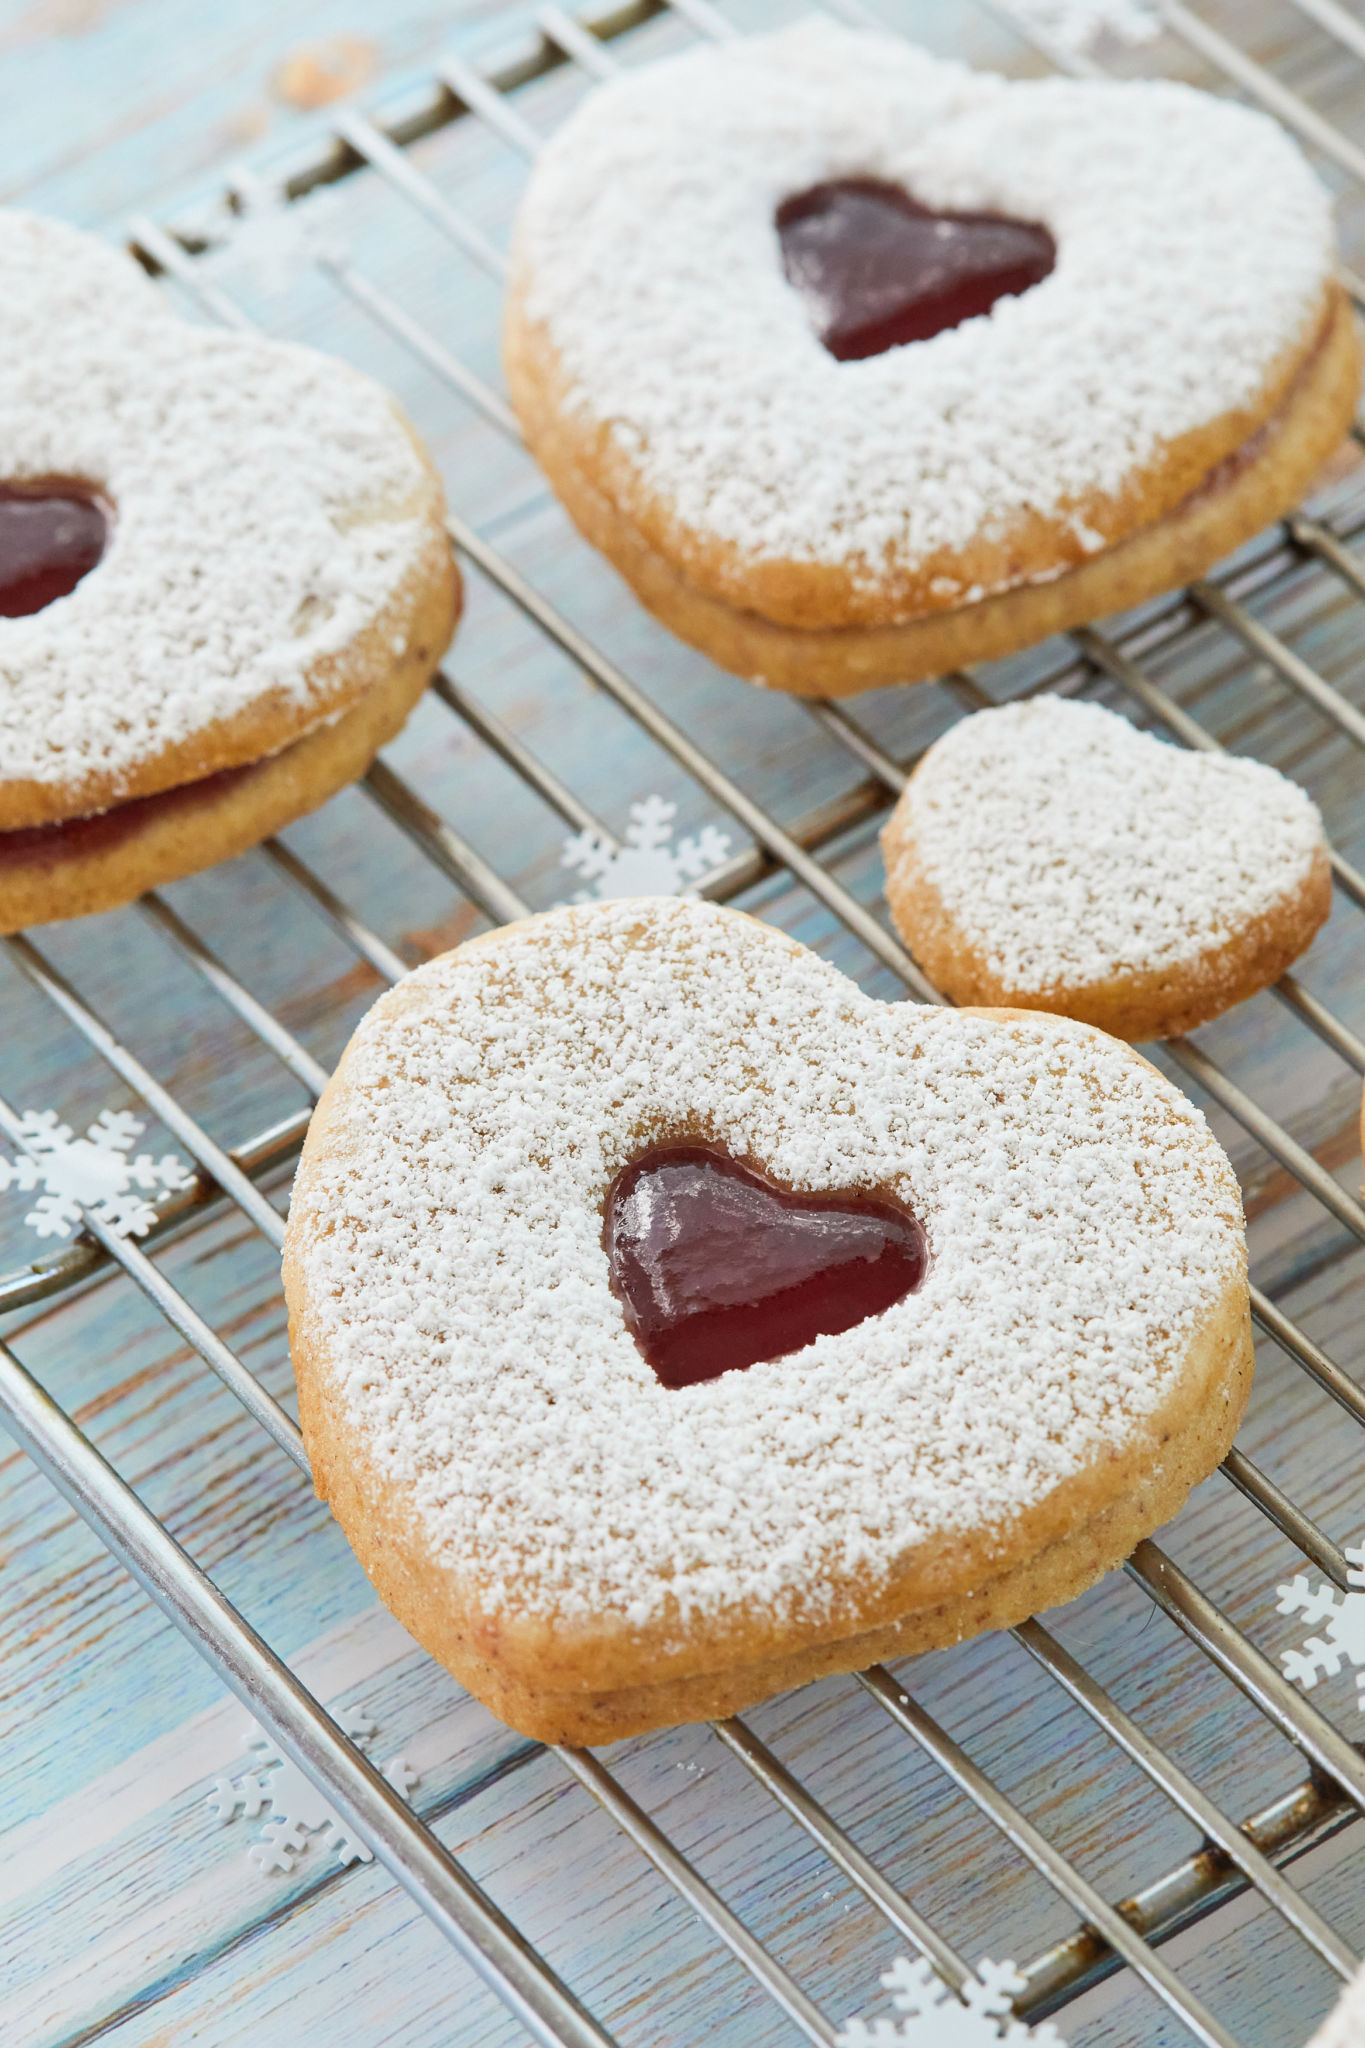 A close up of a Linzer cookie with jam filling.